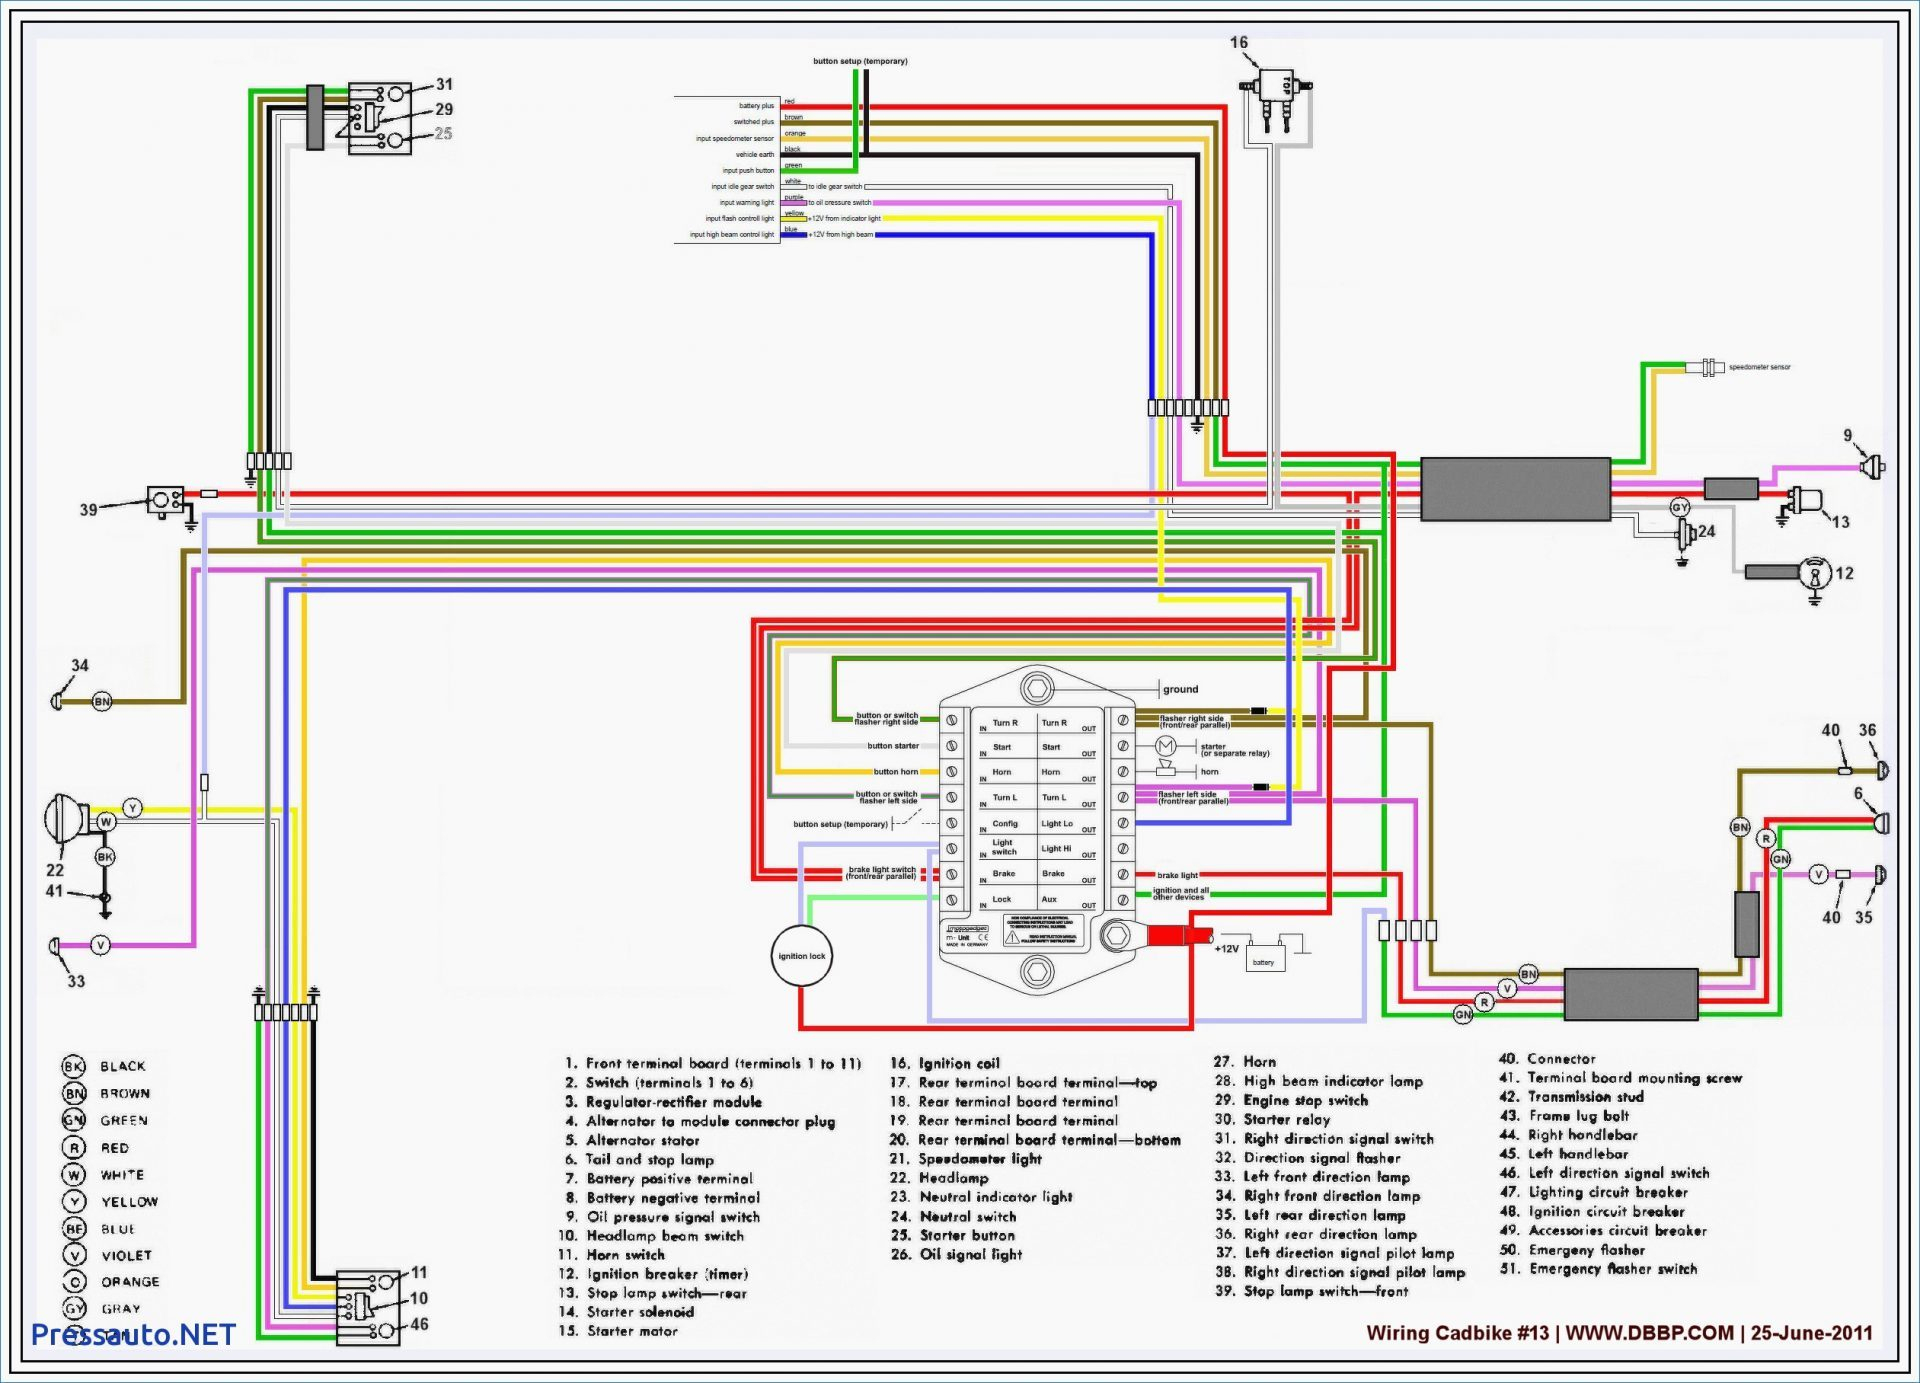 Haulmark Trailer Lights Wiring Diagram | Best Wiring Library - Haulmark Trailer Wiring Diagram